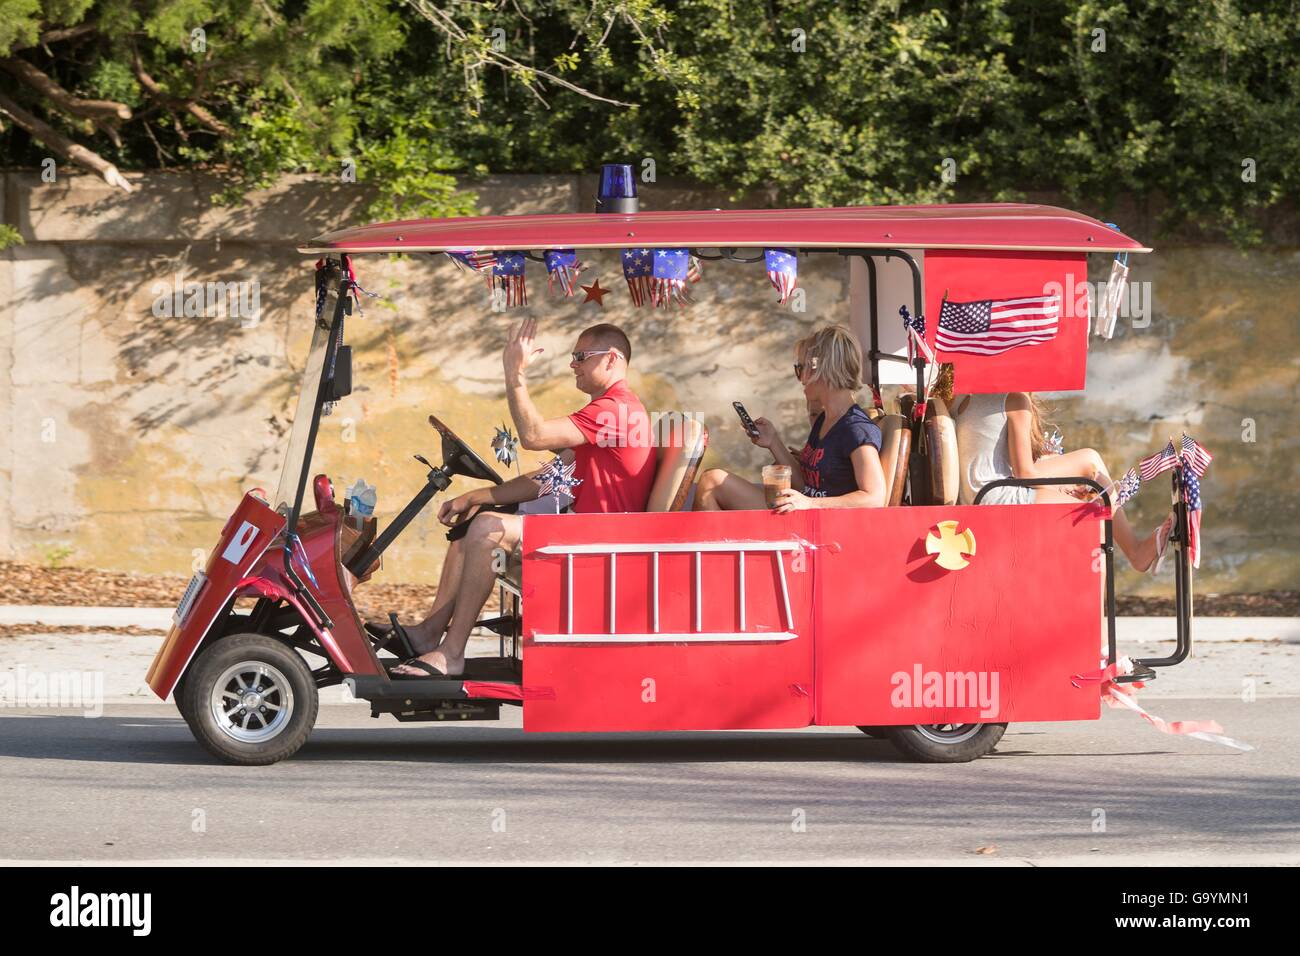 A decorated golf cart during the Sullivan's Island Independence Day on